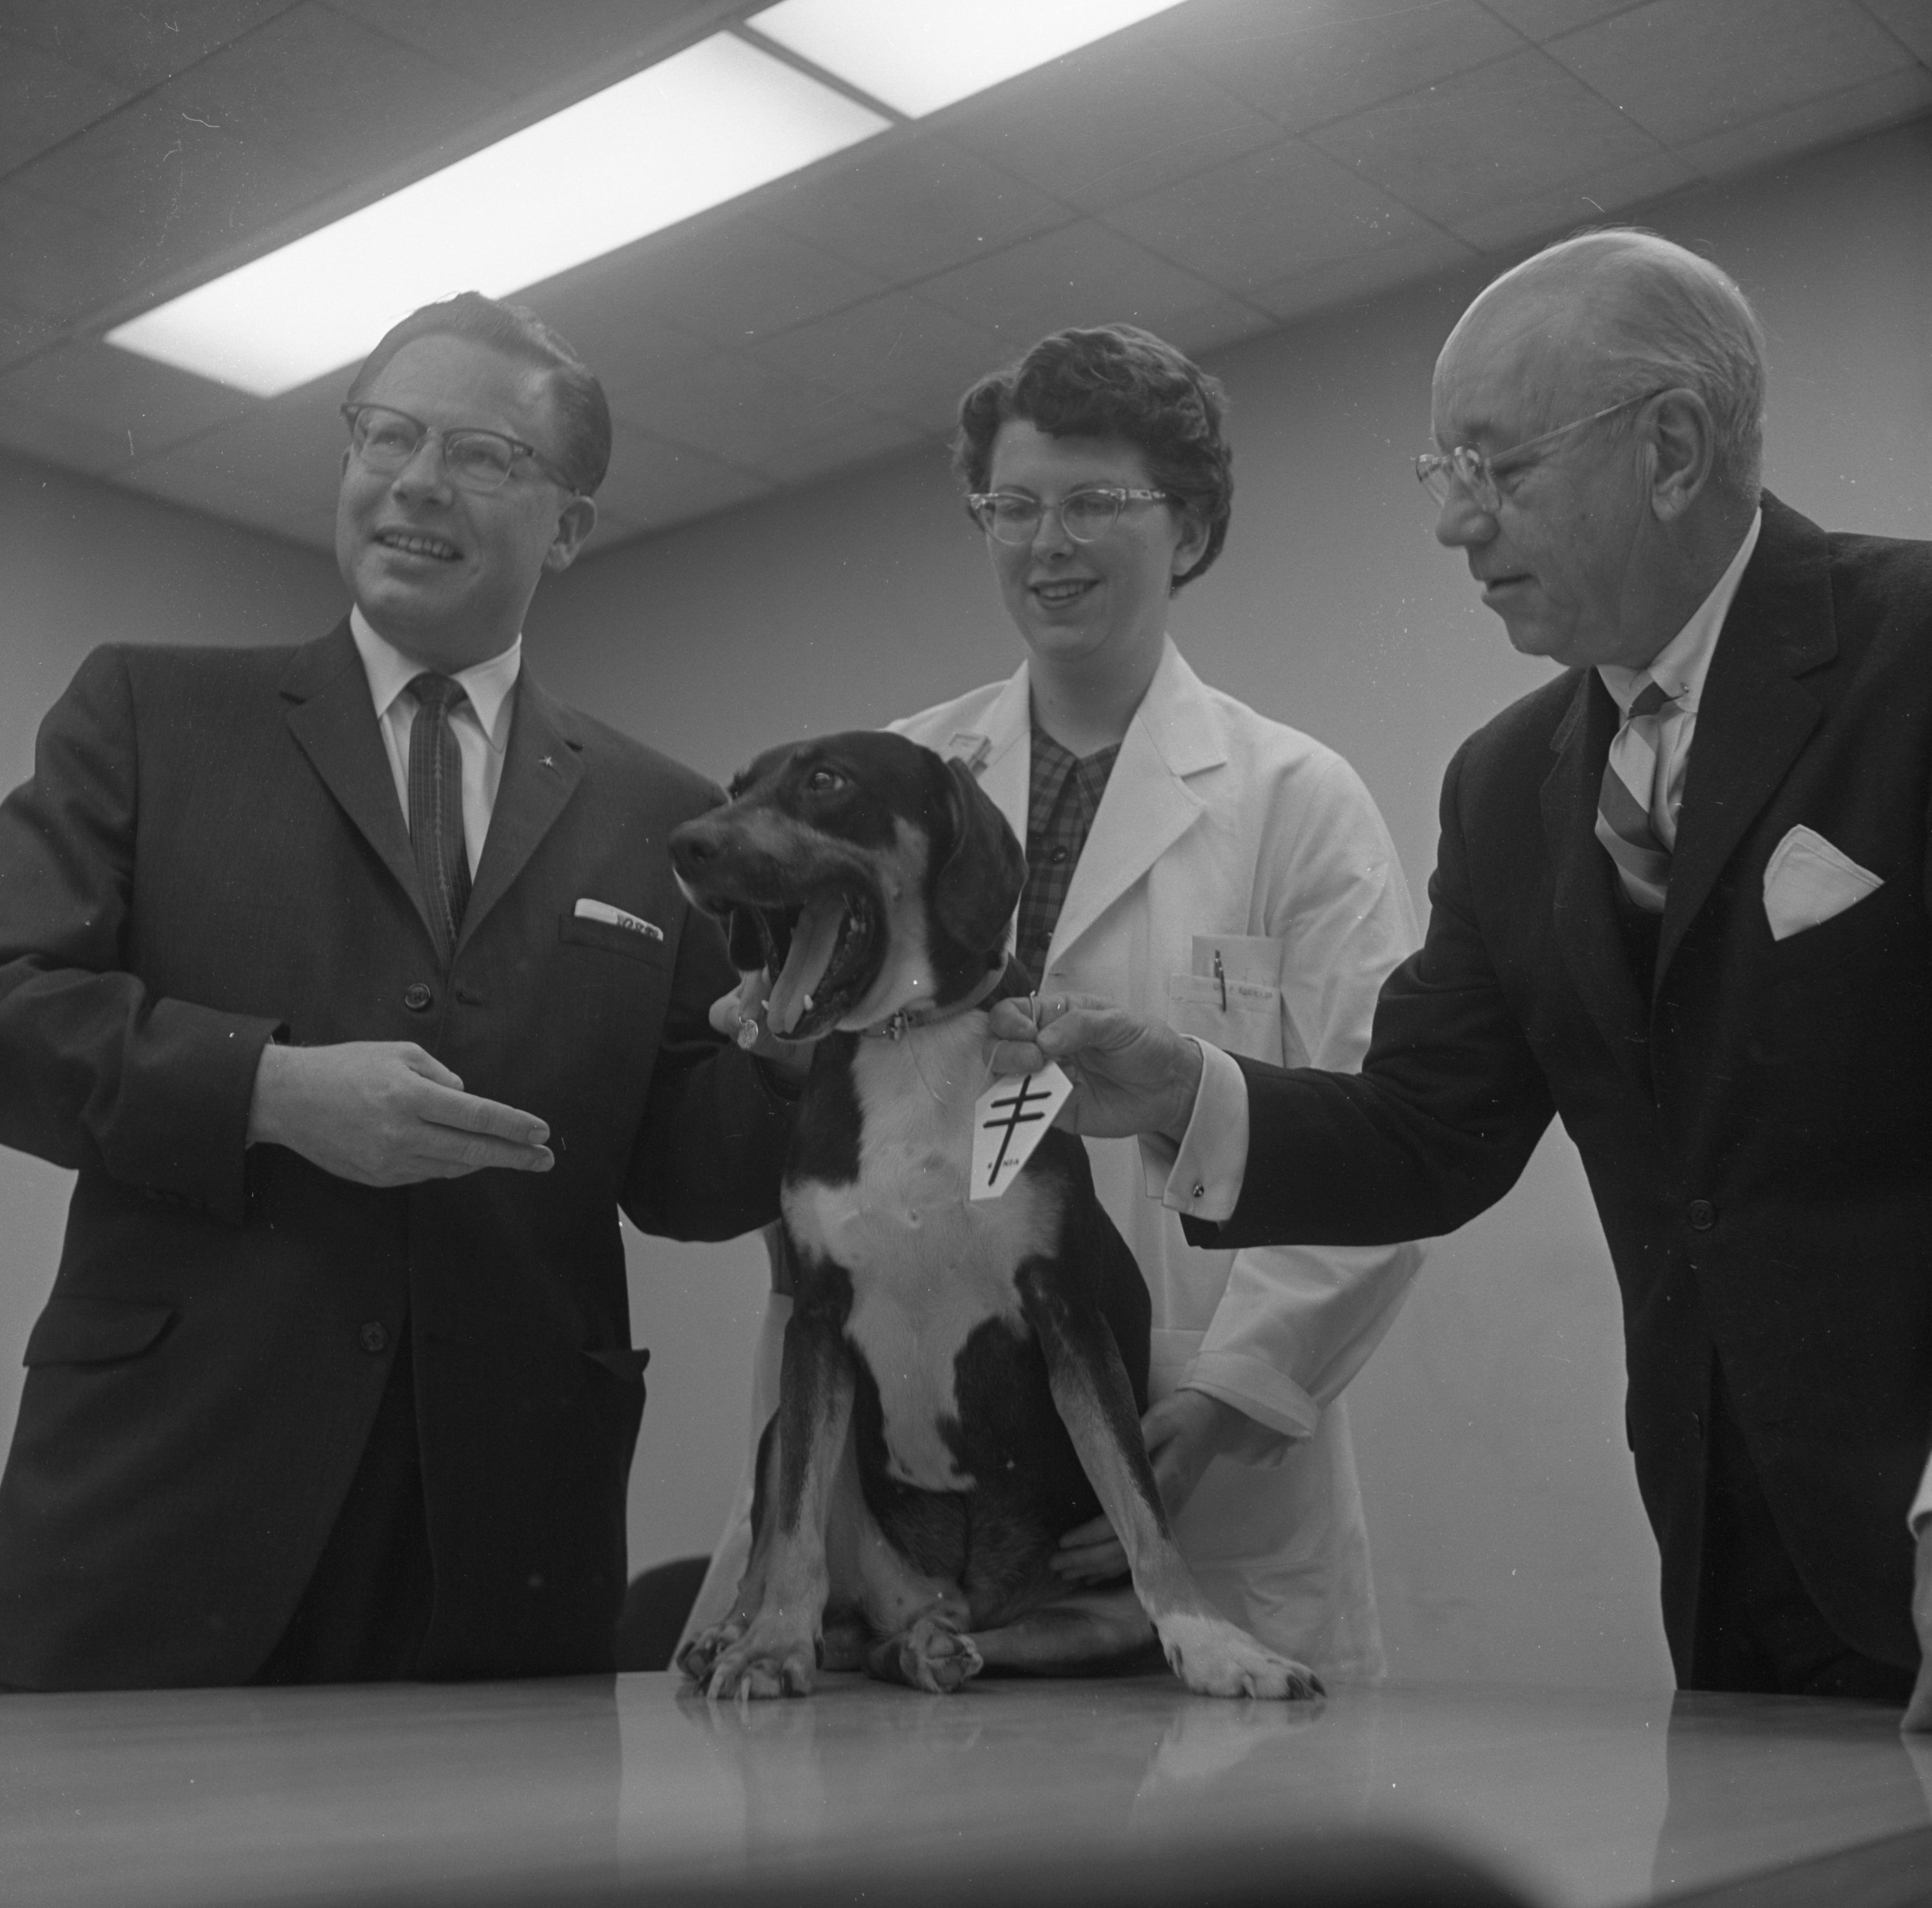 Homer, Hound Dog & Lung Transplant Recipient, Receives Two Medals For His Contribution To Science, April 1962 image